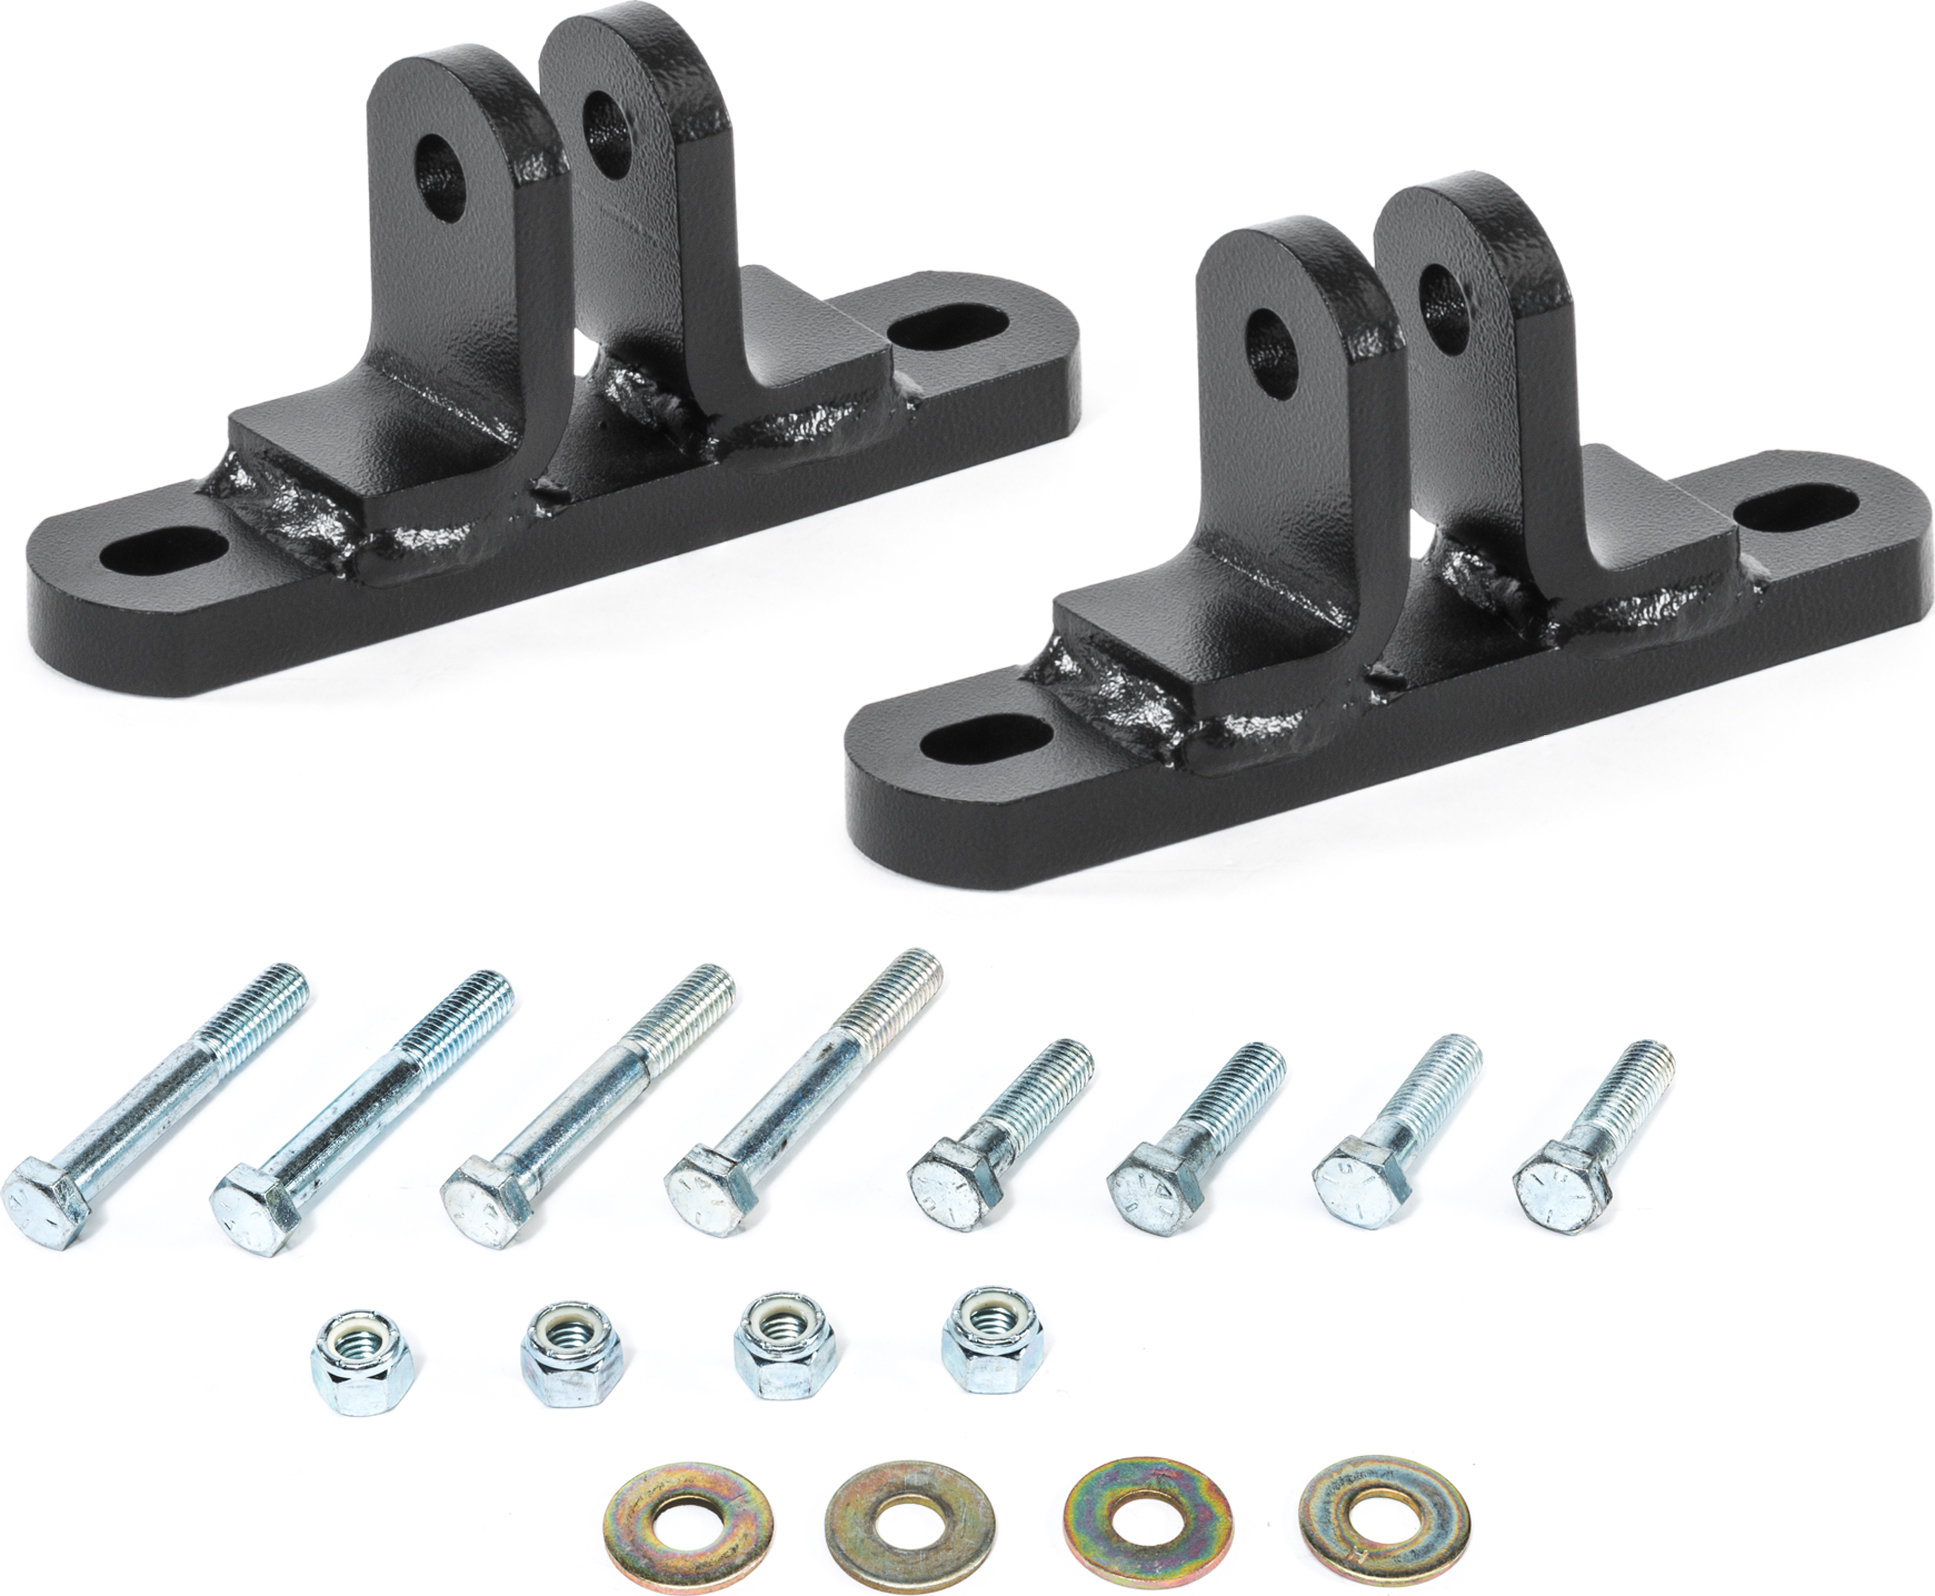 Balkenbefestigung Boden Rock Hard 4x4 Rh8000bo Blue Ox Tow Bracket Kit For 07 18